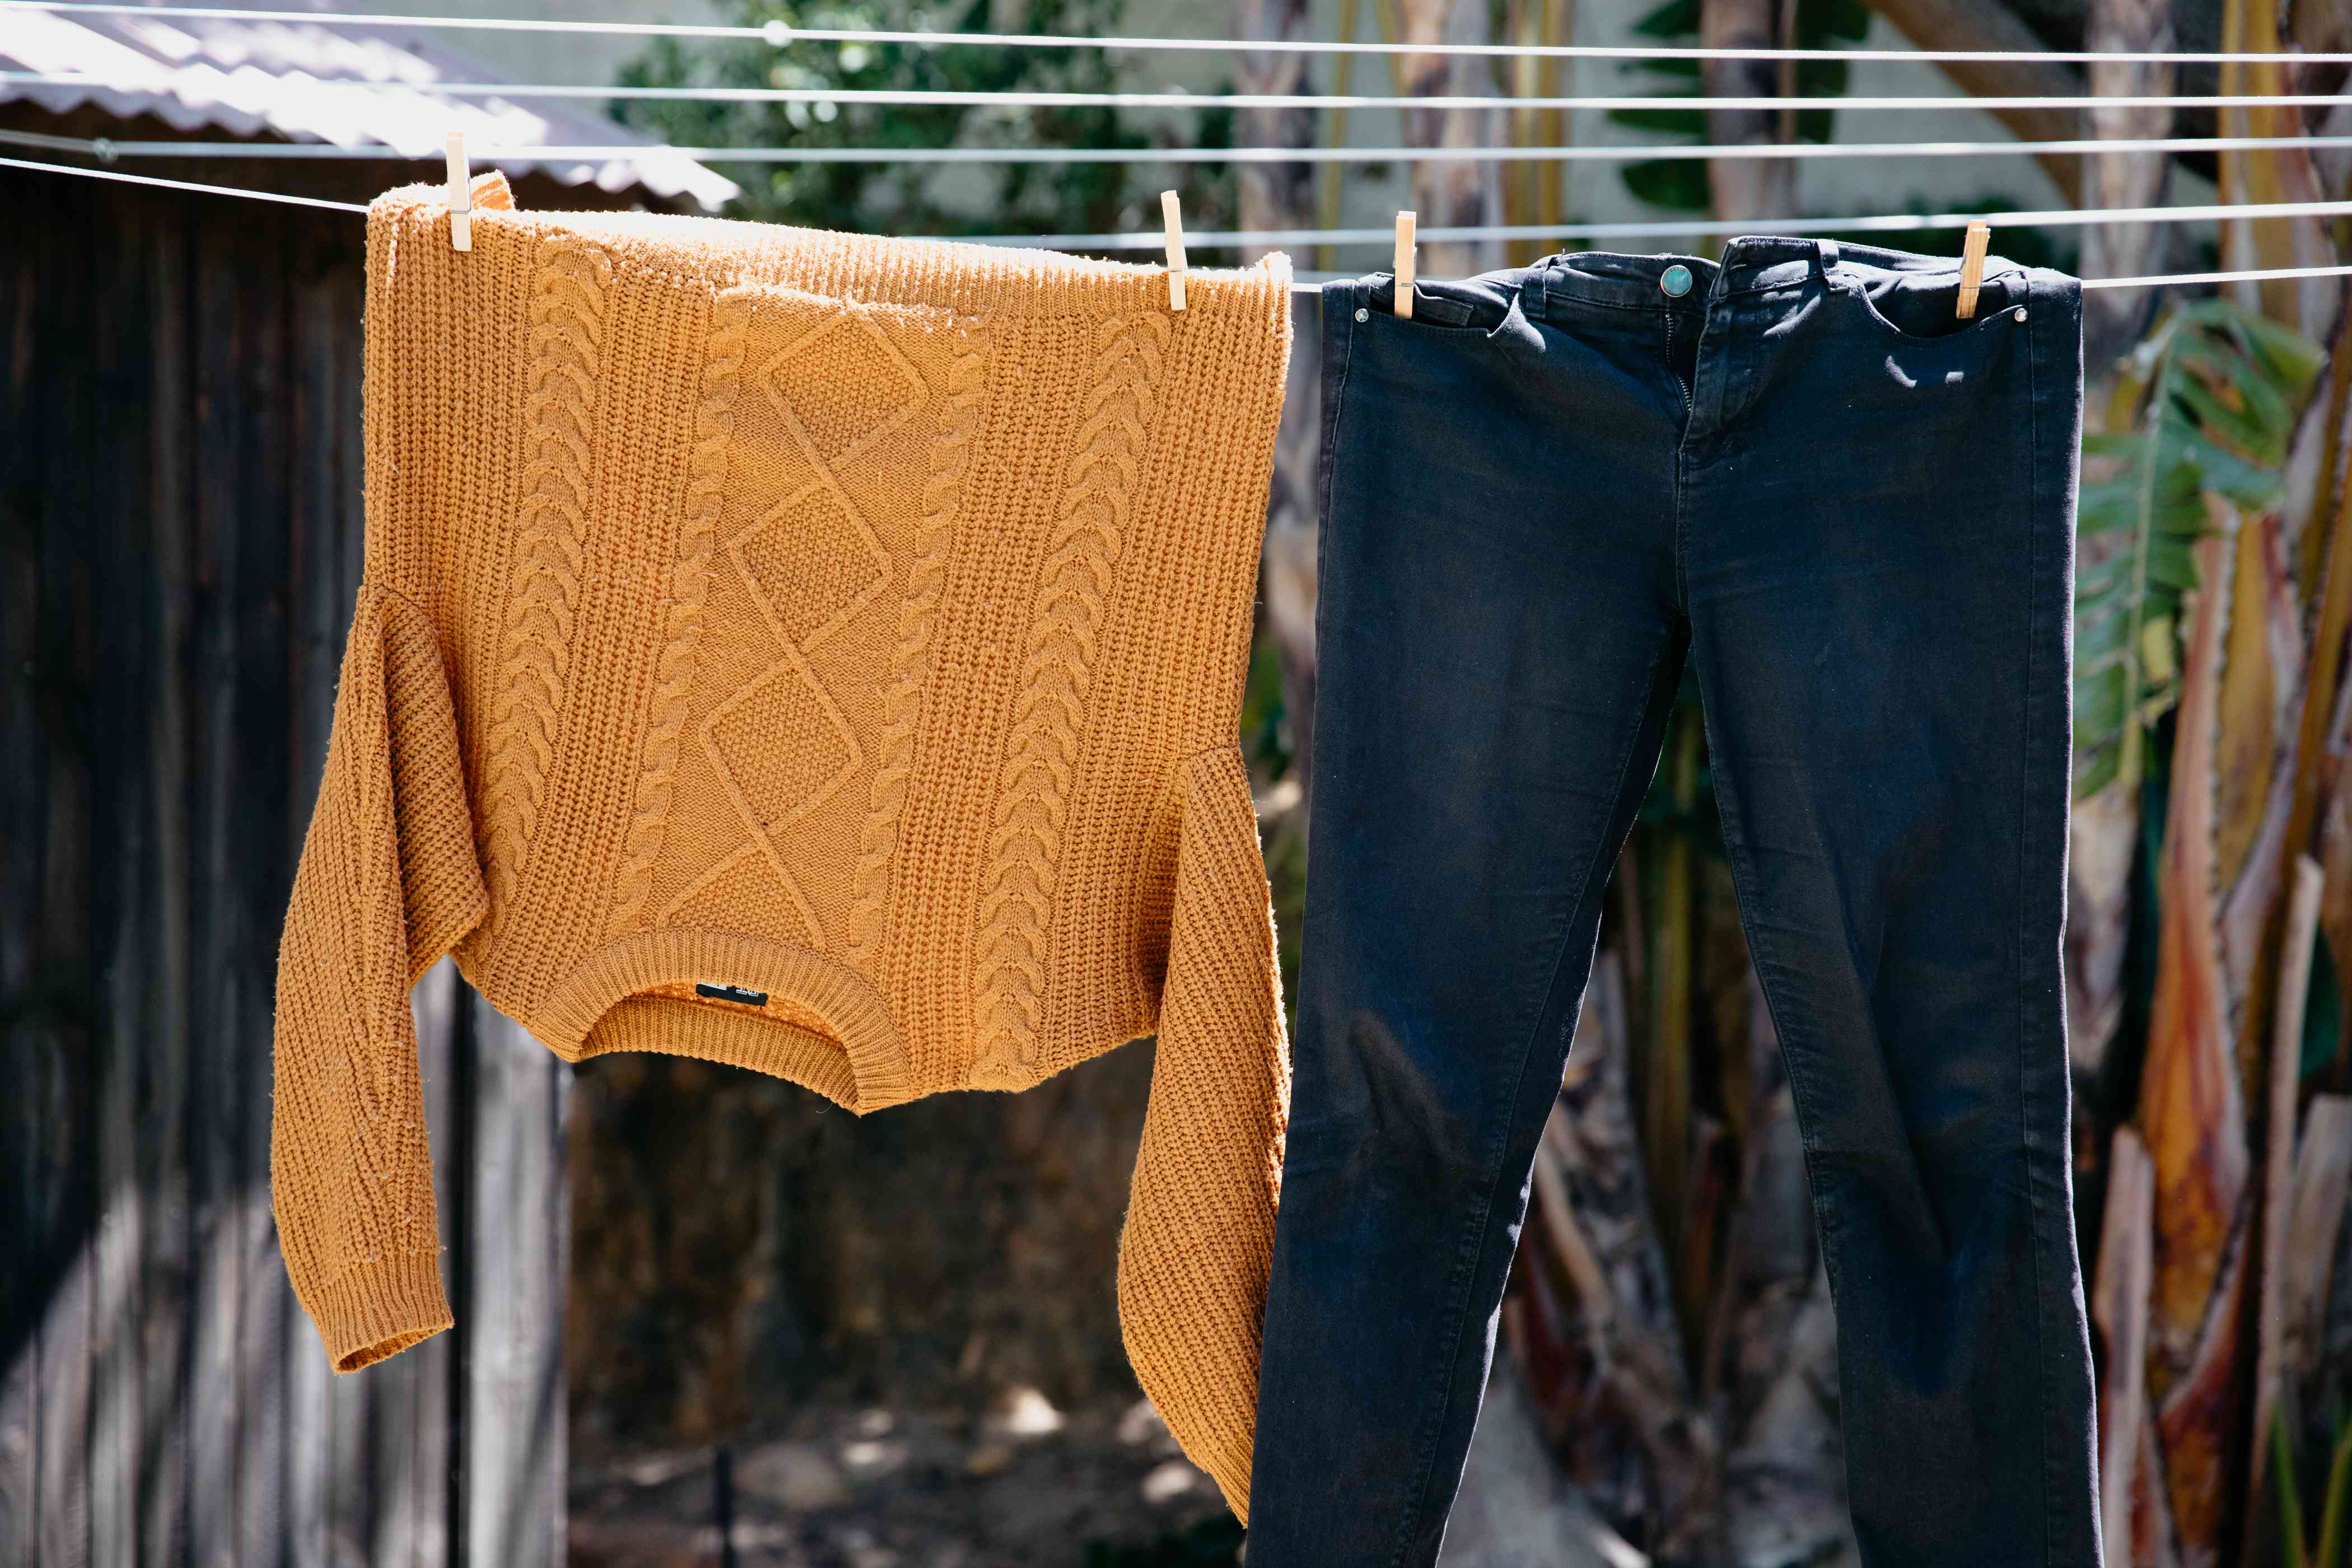 dark jeans can fade from drying outside